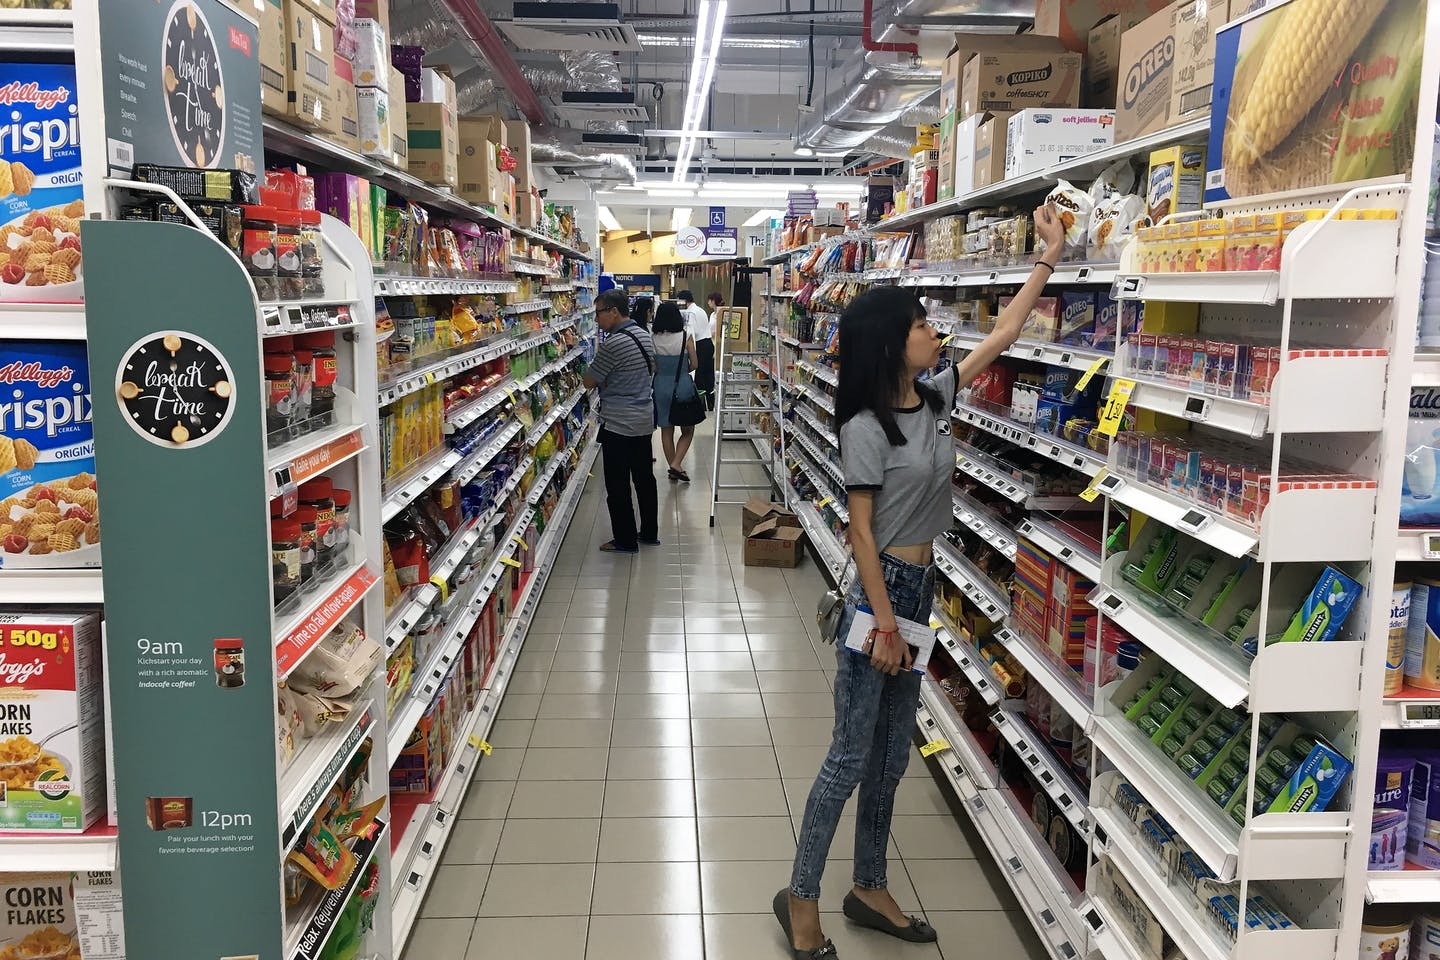 Choosing the responsible food option? A customer a supermarket in Singapore reaches for an item. Image: Eco-Business